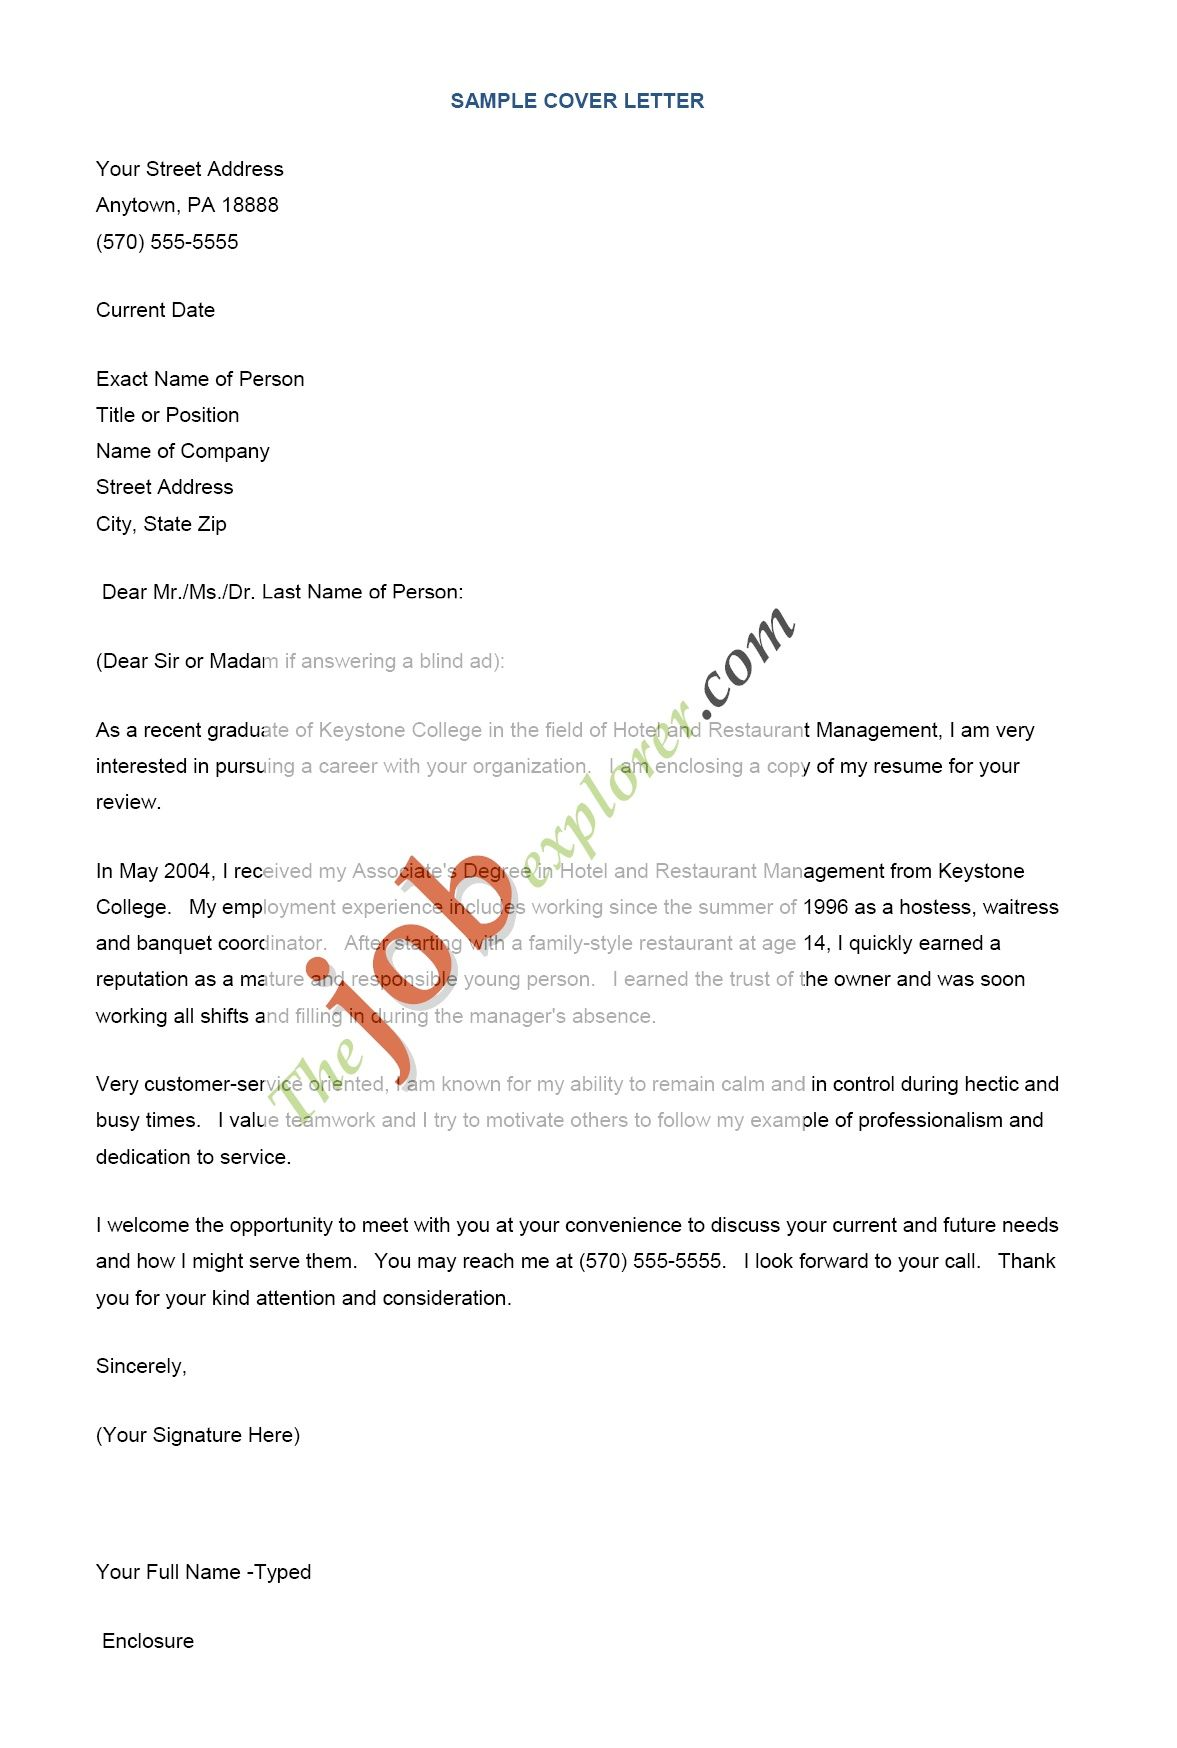 Noc Sample Letter From Employer 11374C696F479D1617B4139889E78C70 1177×1748 Pixels  Letters .